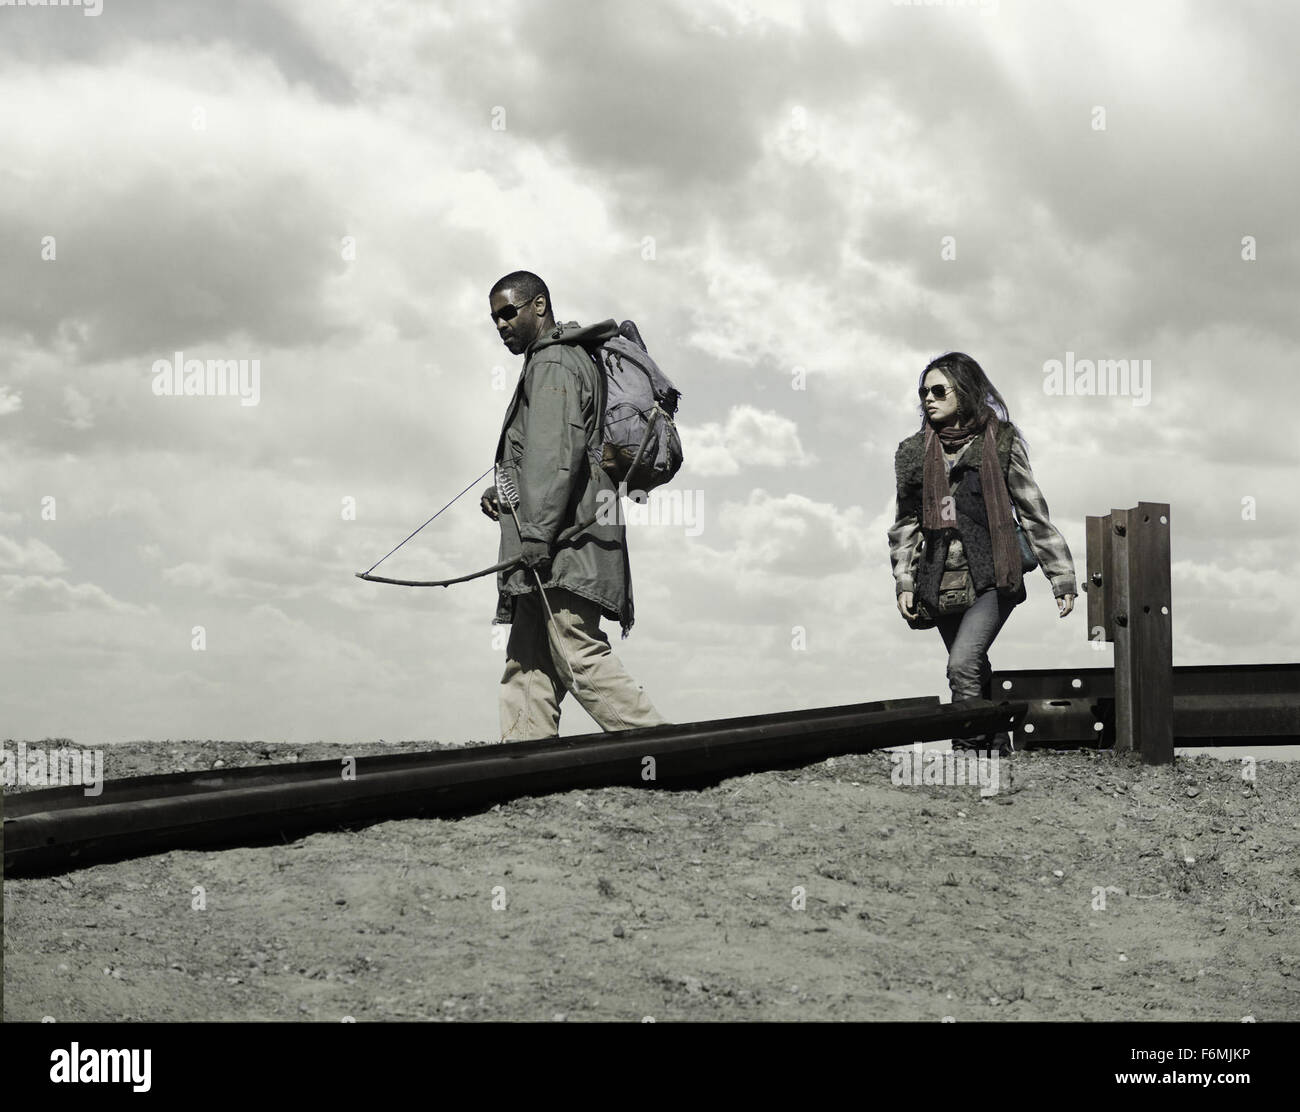 RELEASE DATE: January 15, 2009. MOVIE TITLE: The Book of Eli. STUDIO: Silver Pictures. PLOT: A post-apocalyptic - Stock Image